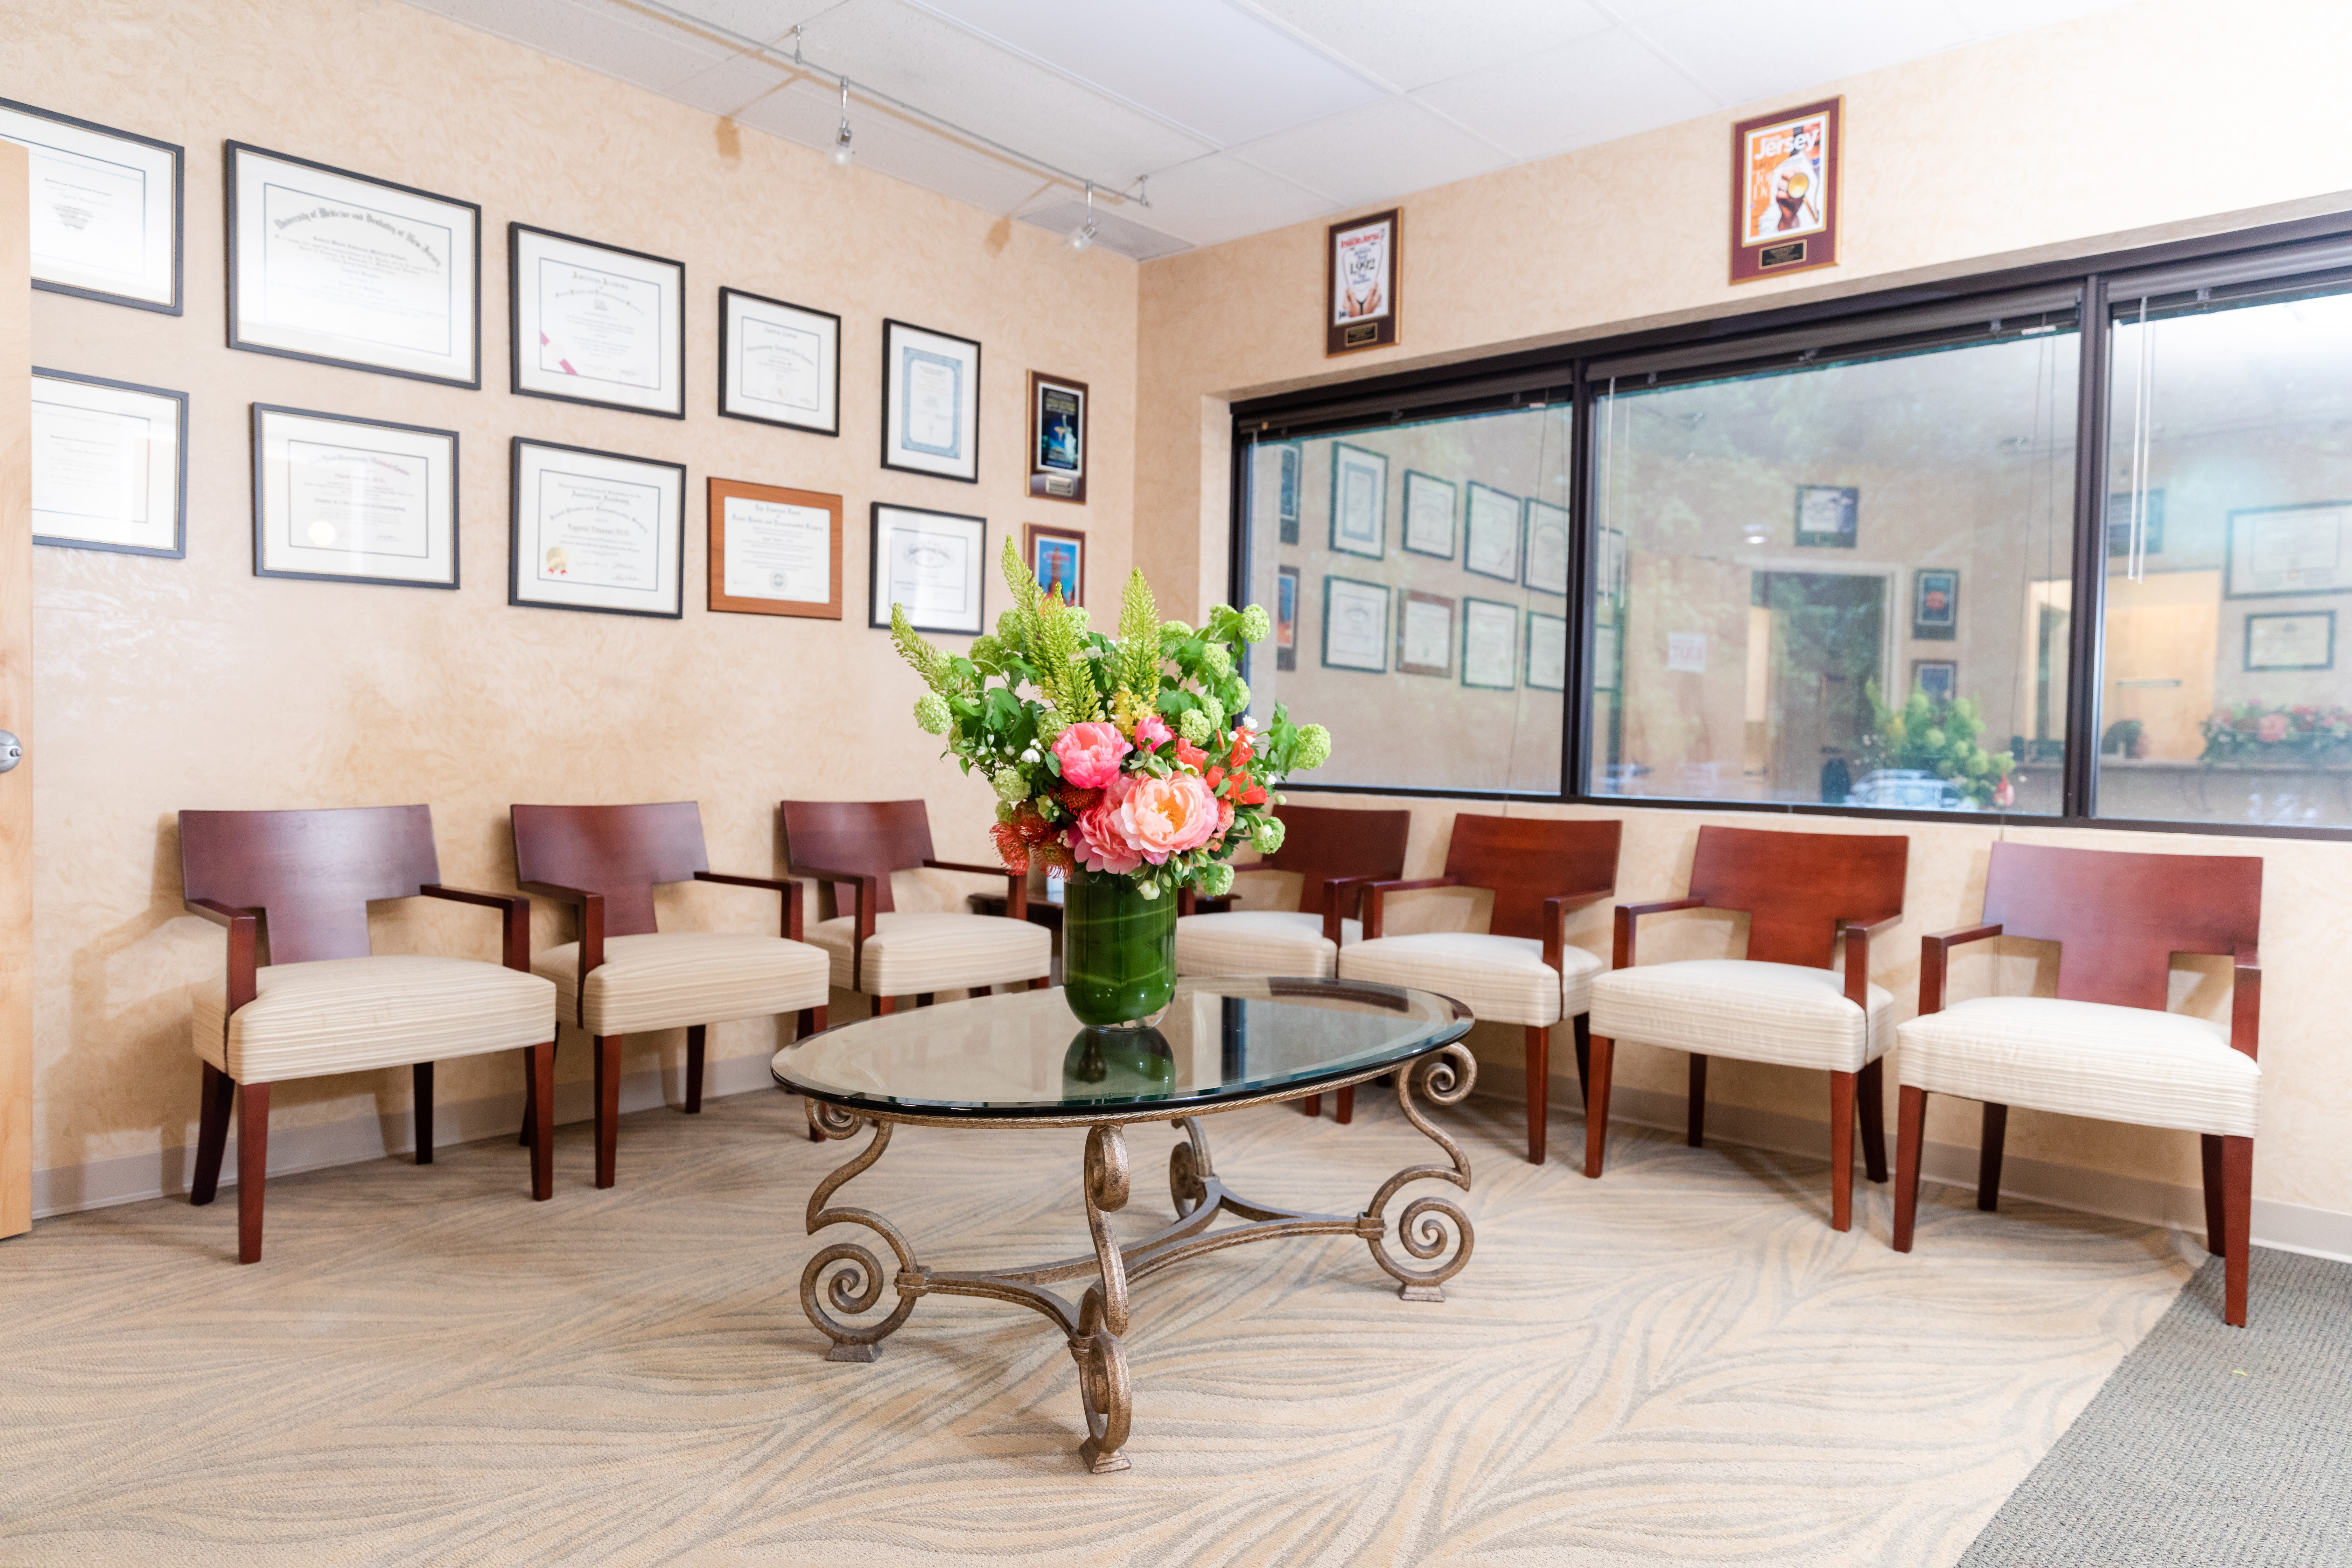 Dr-Eugenie-Brunner-Facial-Plastic-Surgeon-Waiting-Room